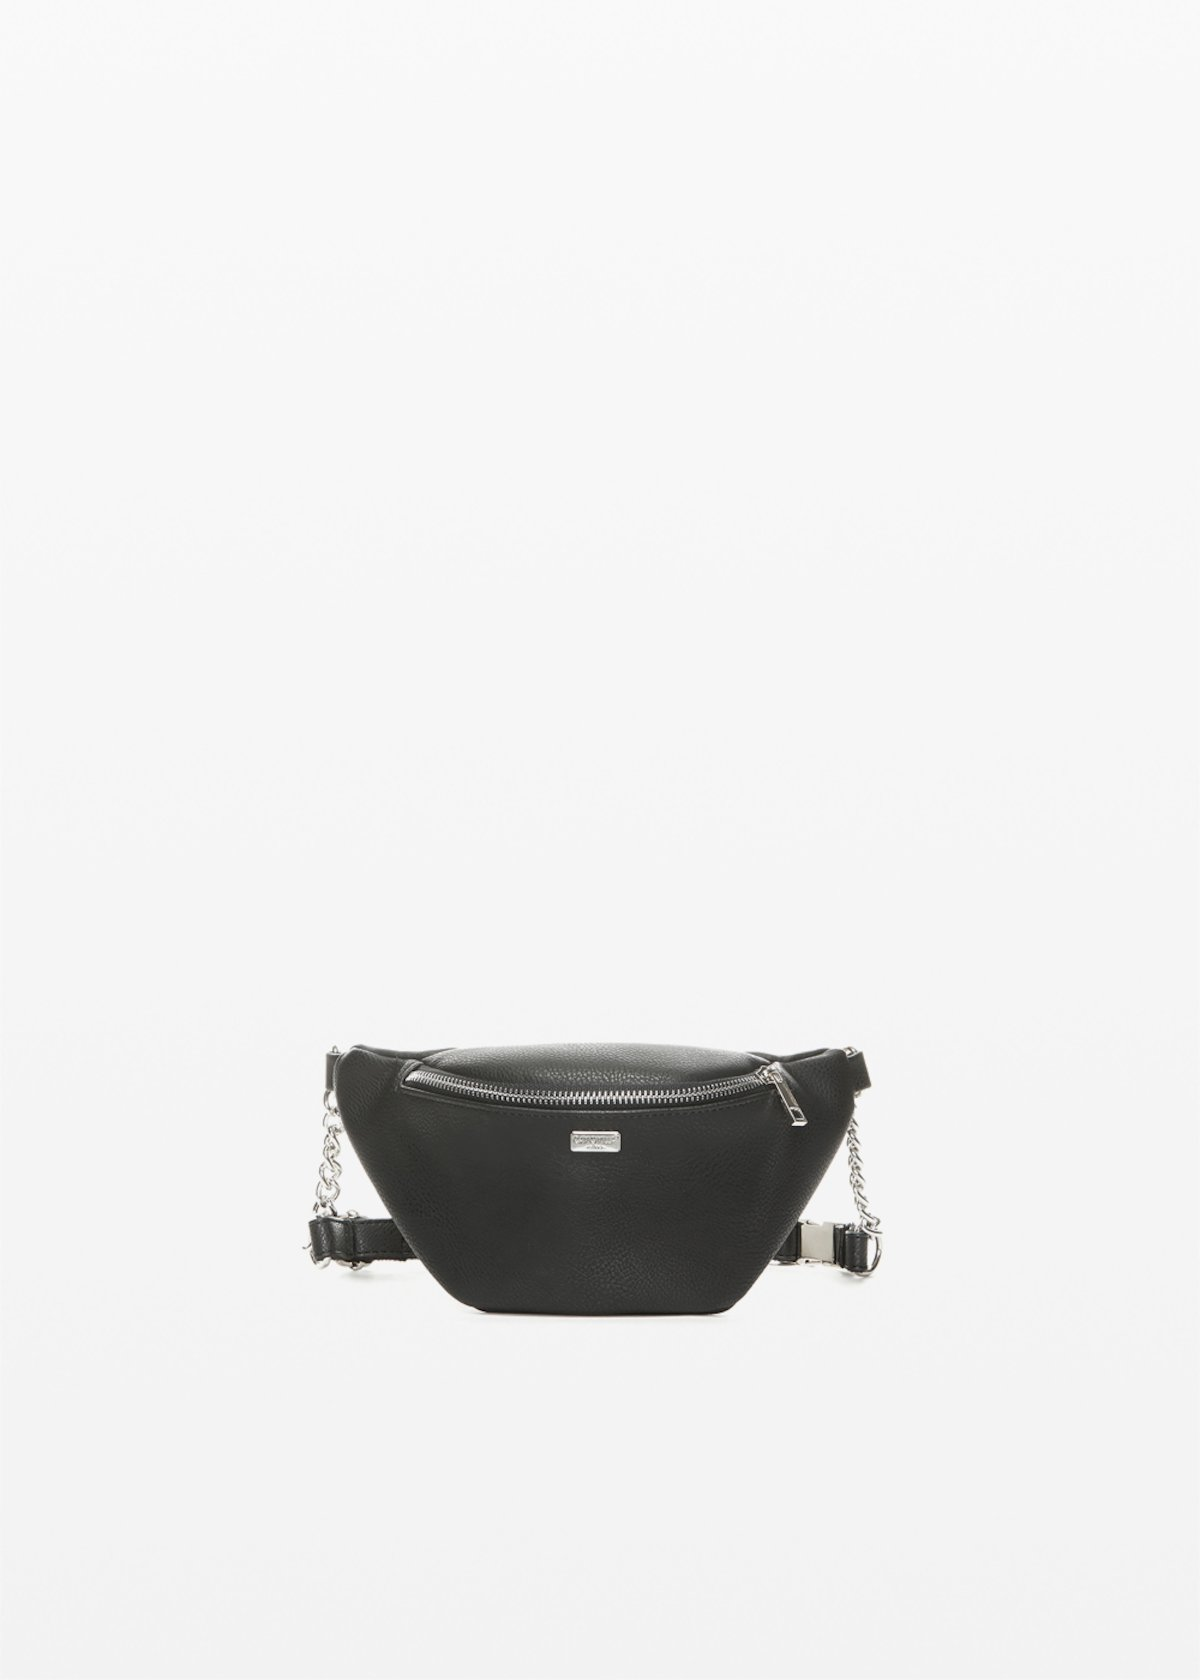 Breshi faux leather waist bag with metal chain detail.